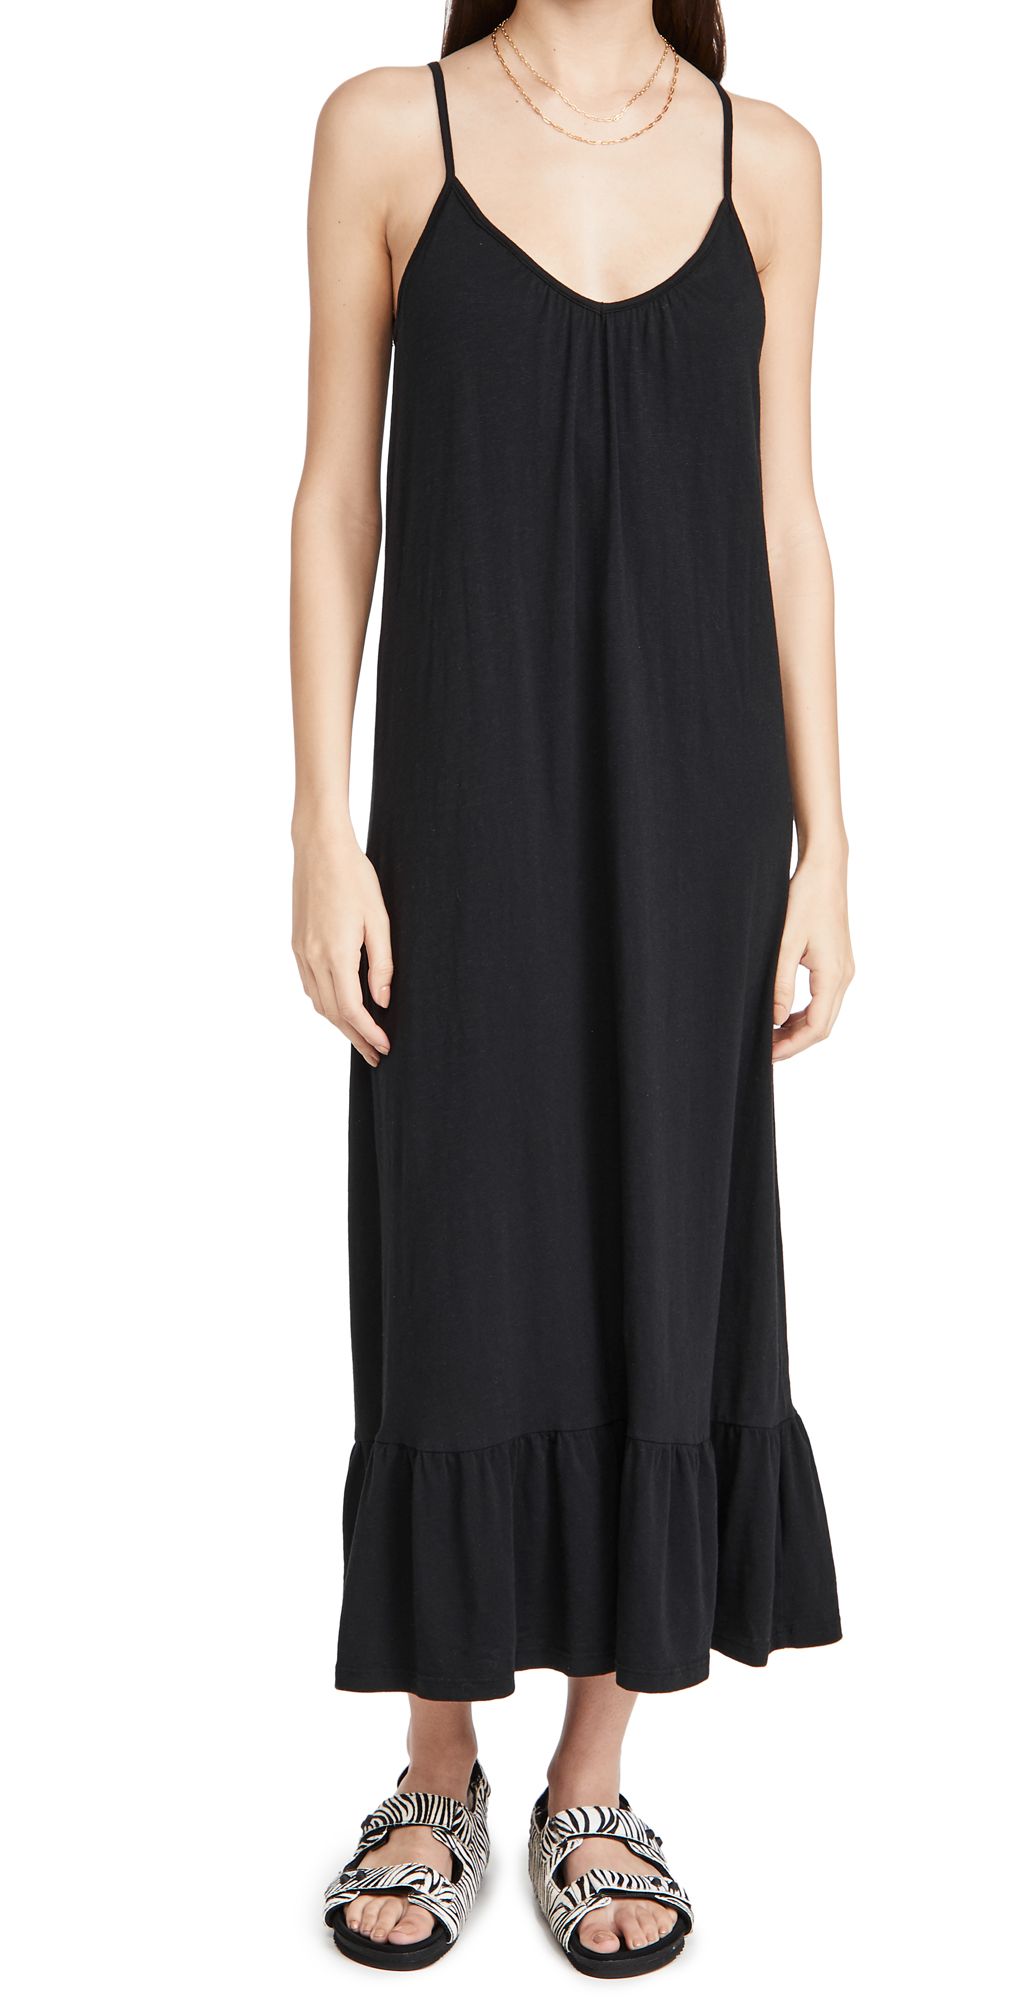 SUNDRY V Neck Strap Maxi Dress